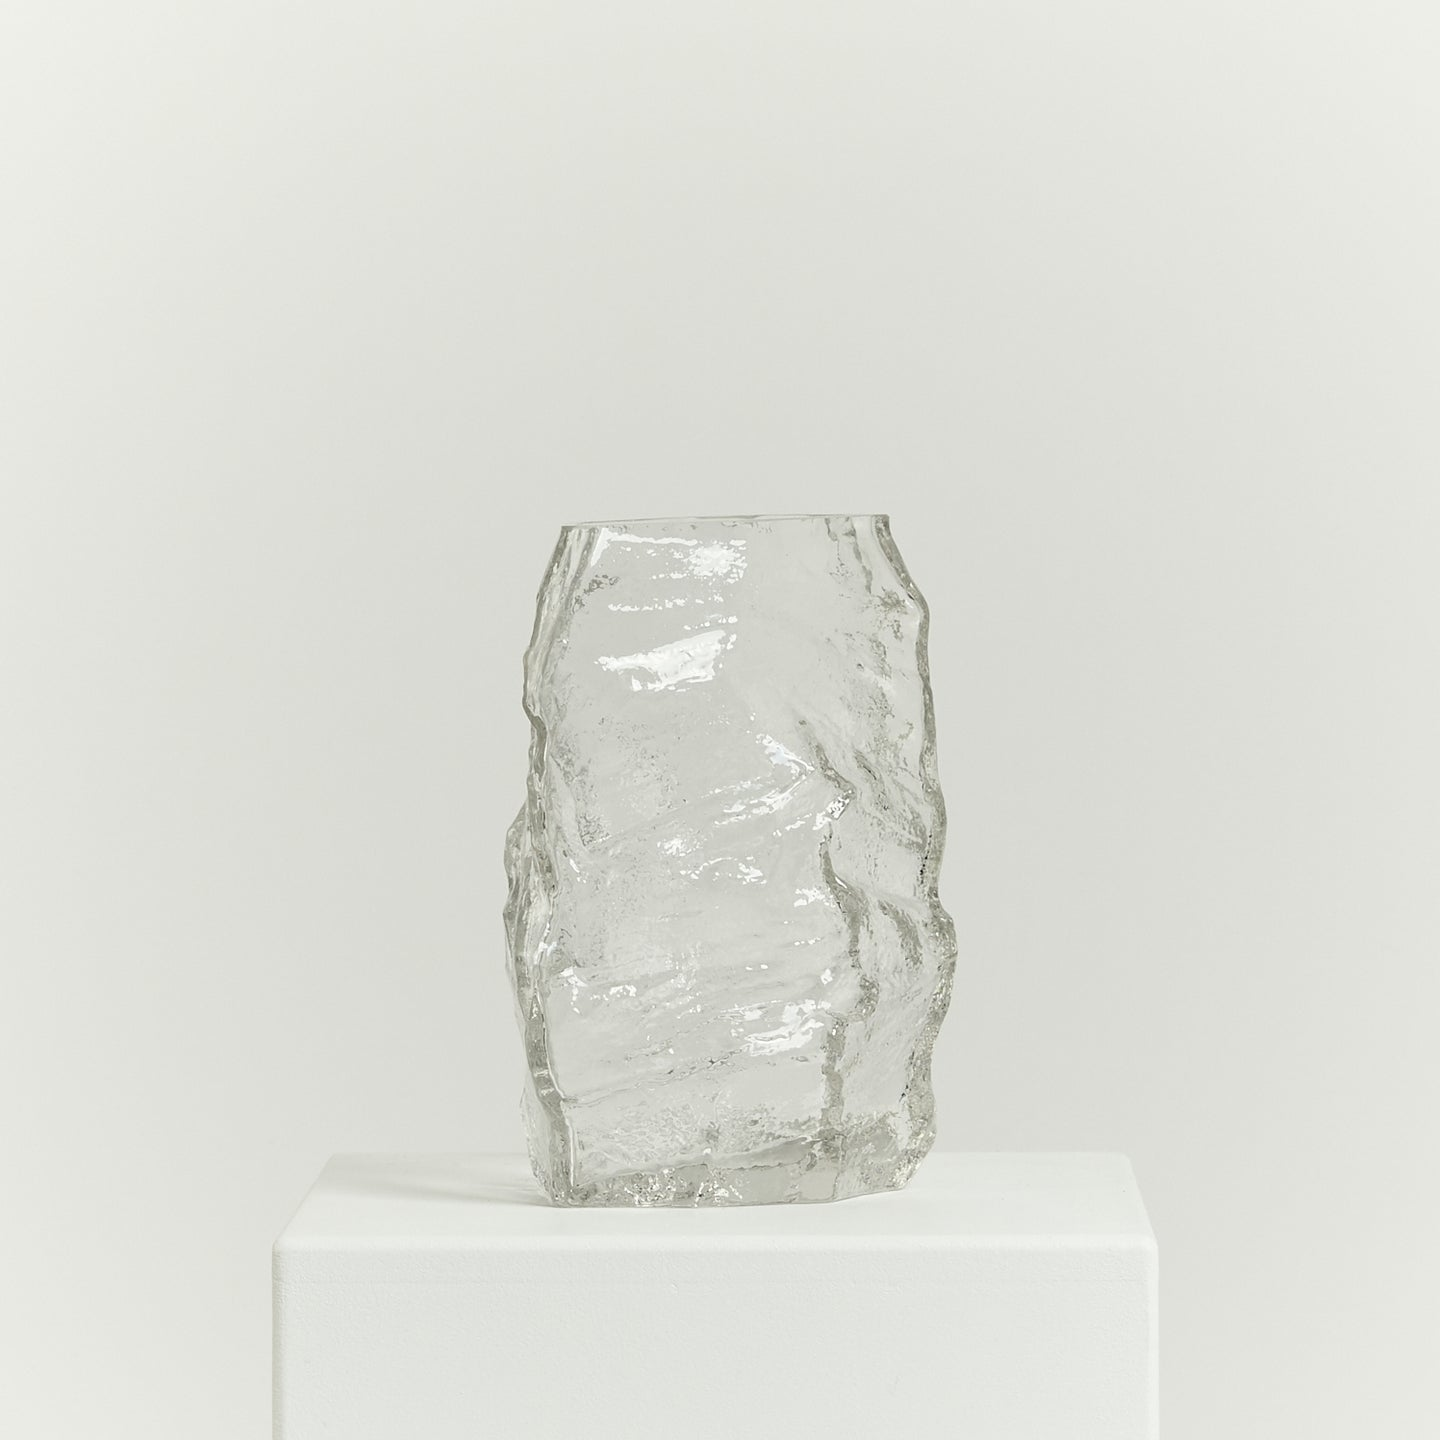 Asymmetric art glass vessel